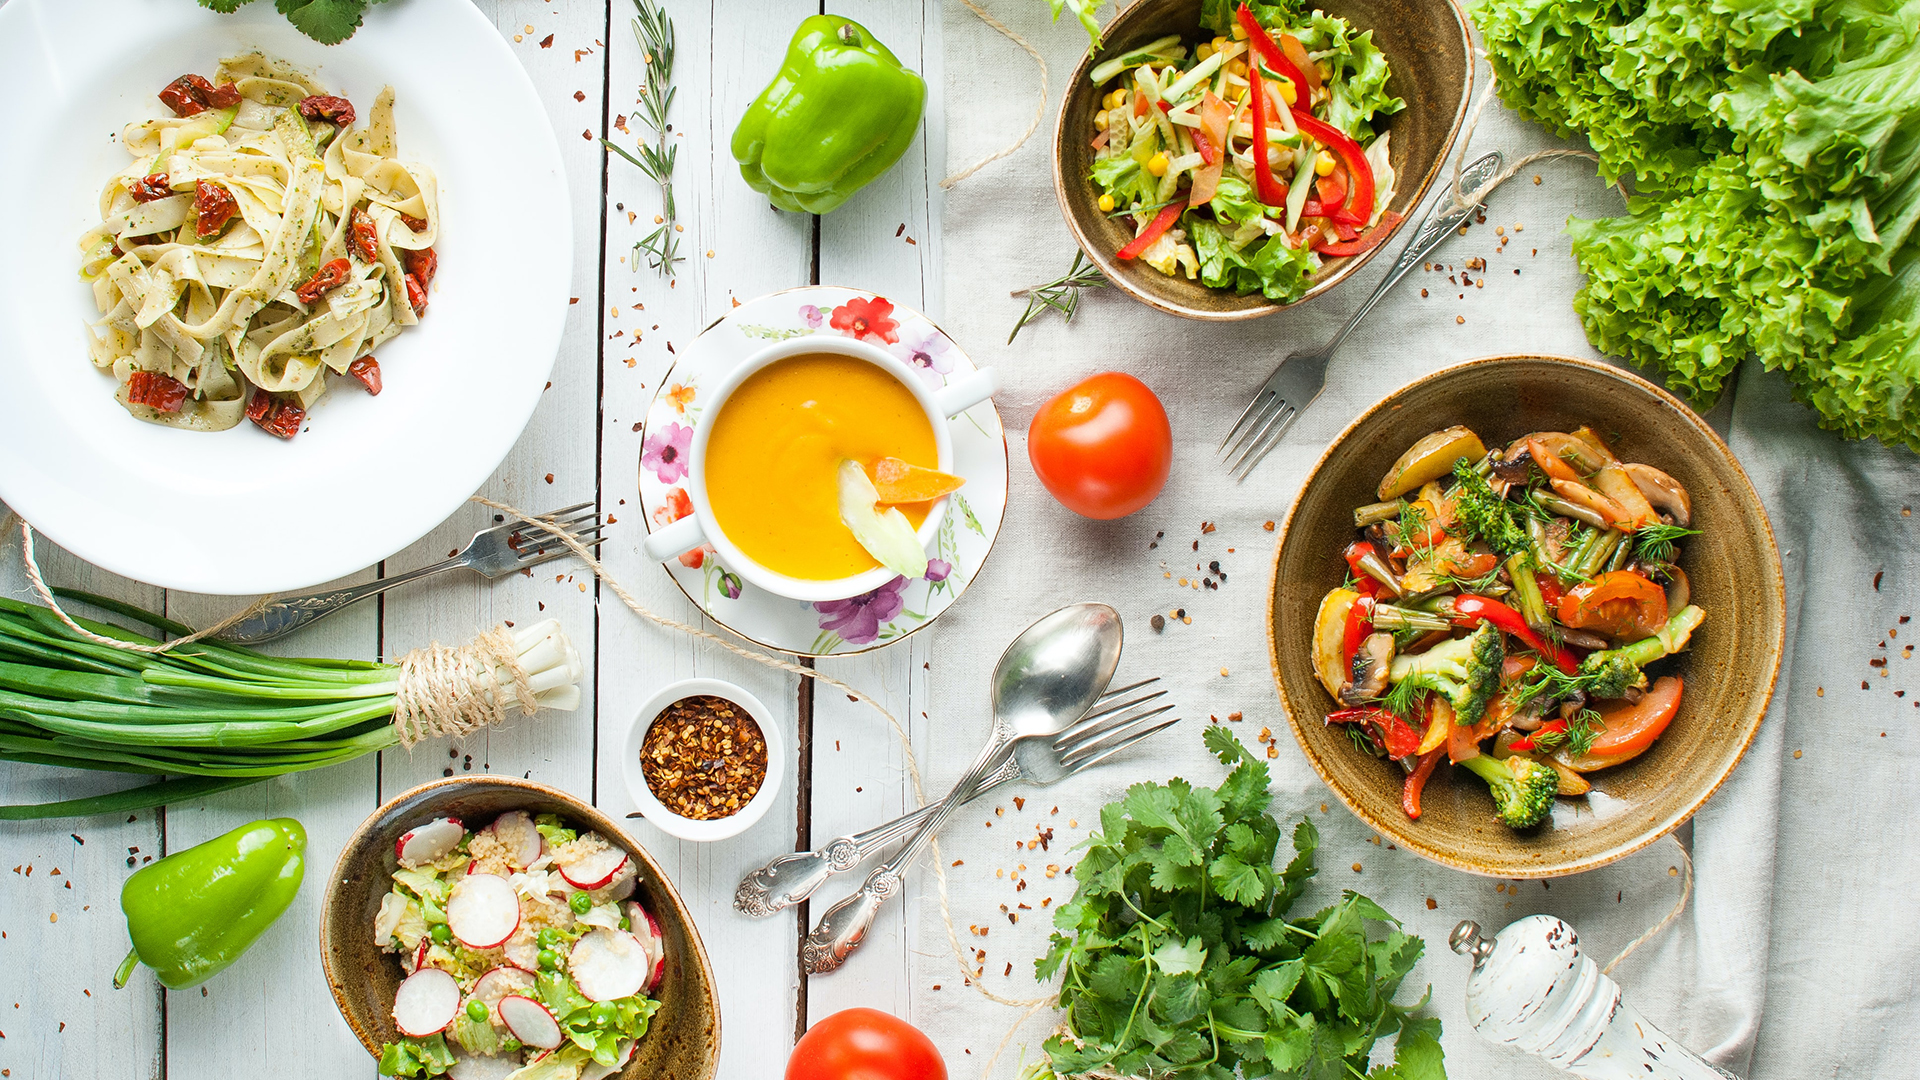 Small Changes In Diet Could Help You Live Healthier, More Sustainably: Study